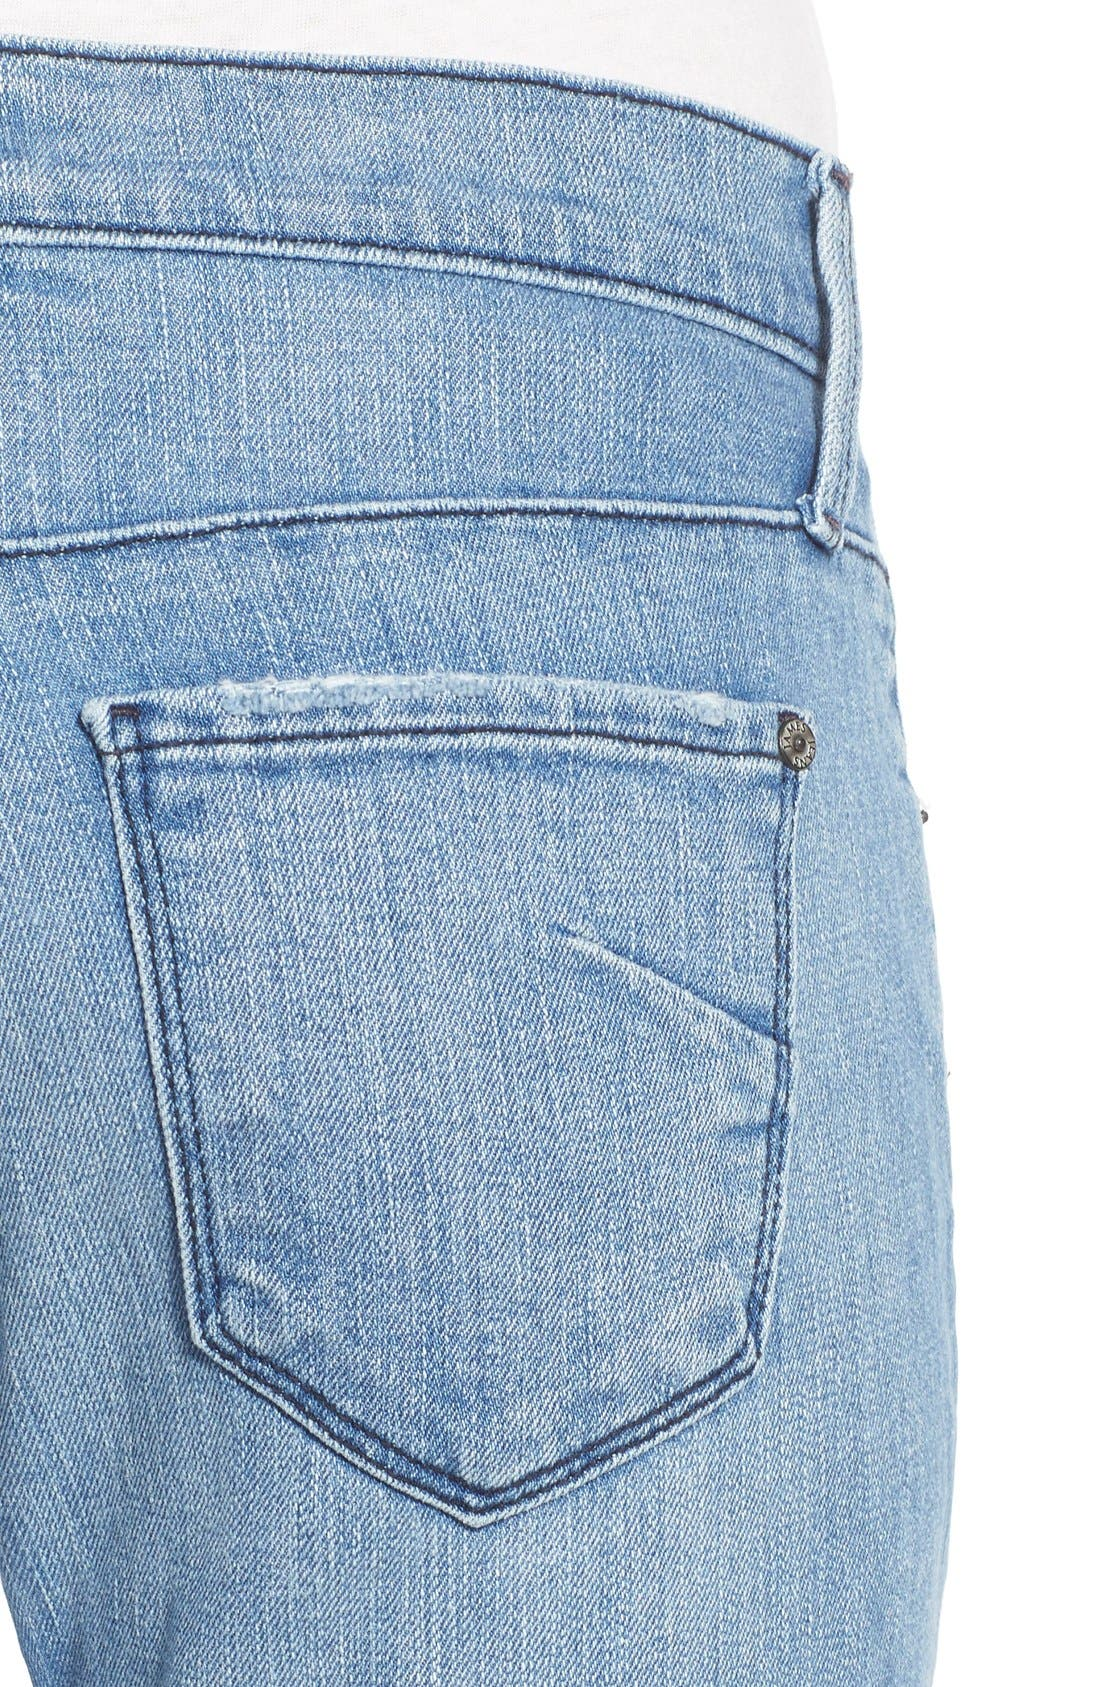 Alternate Image 4  - James Jeans Distressed Slim Boyfriend Jeans (Joy Ride)